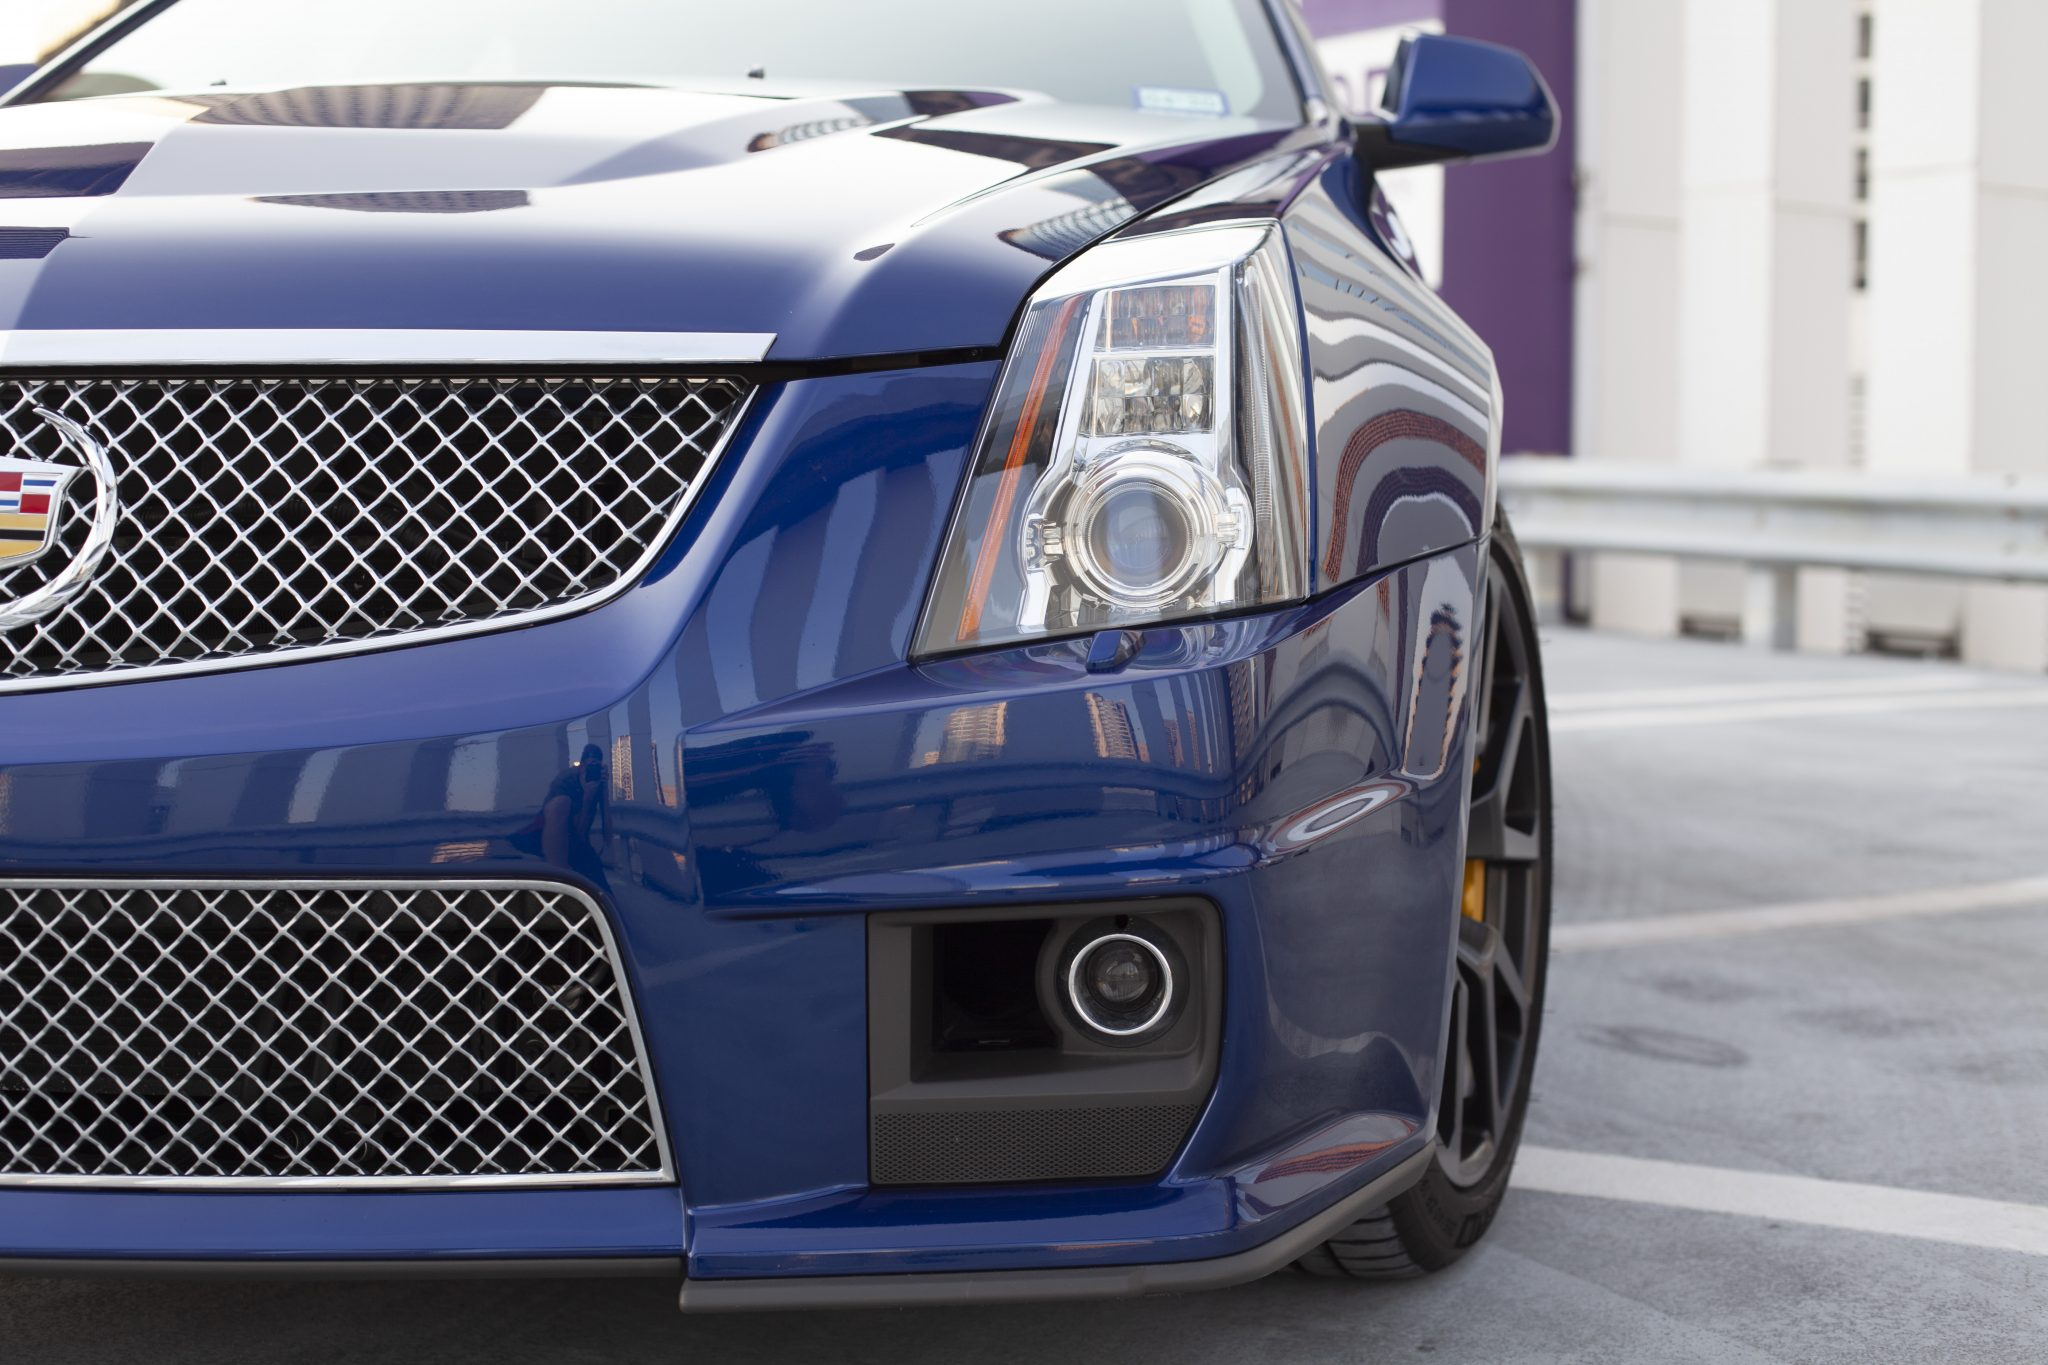 2012 Cadillac CTS-V Wagon headlight